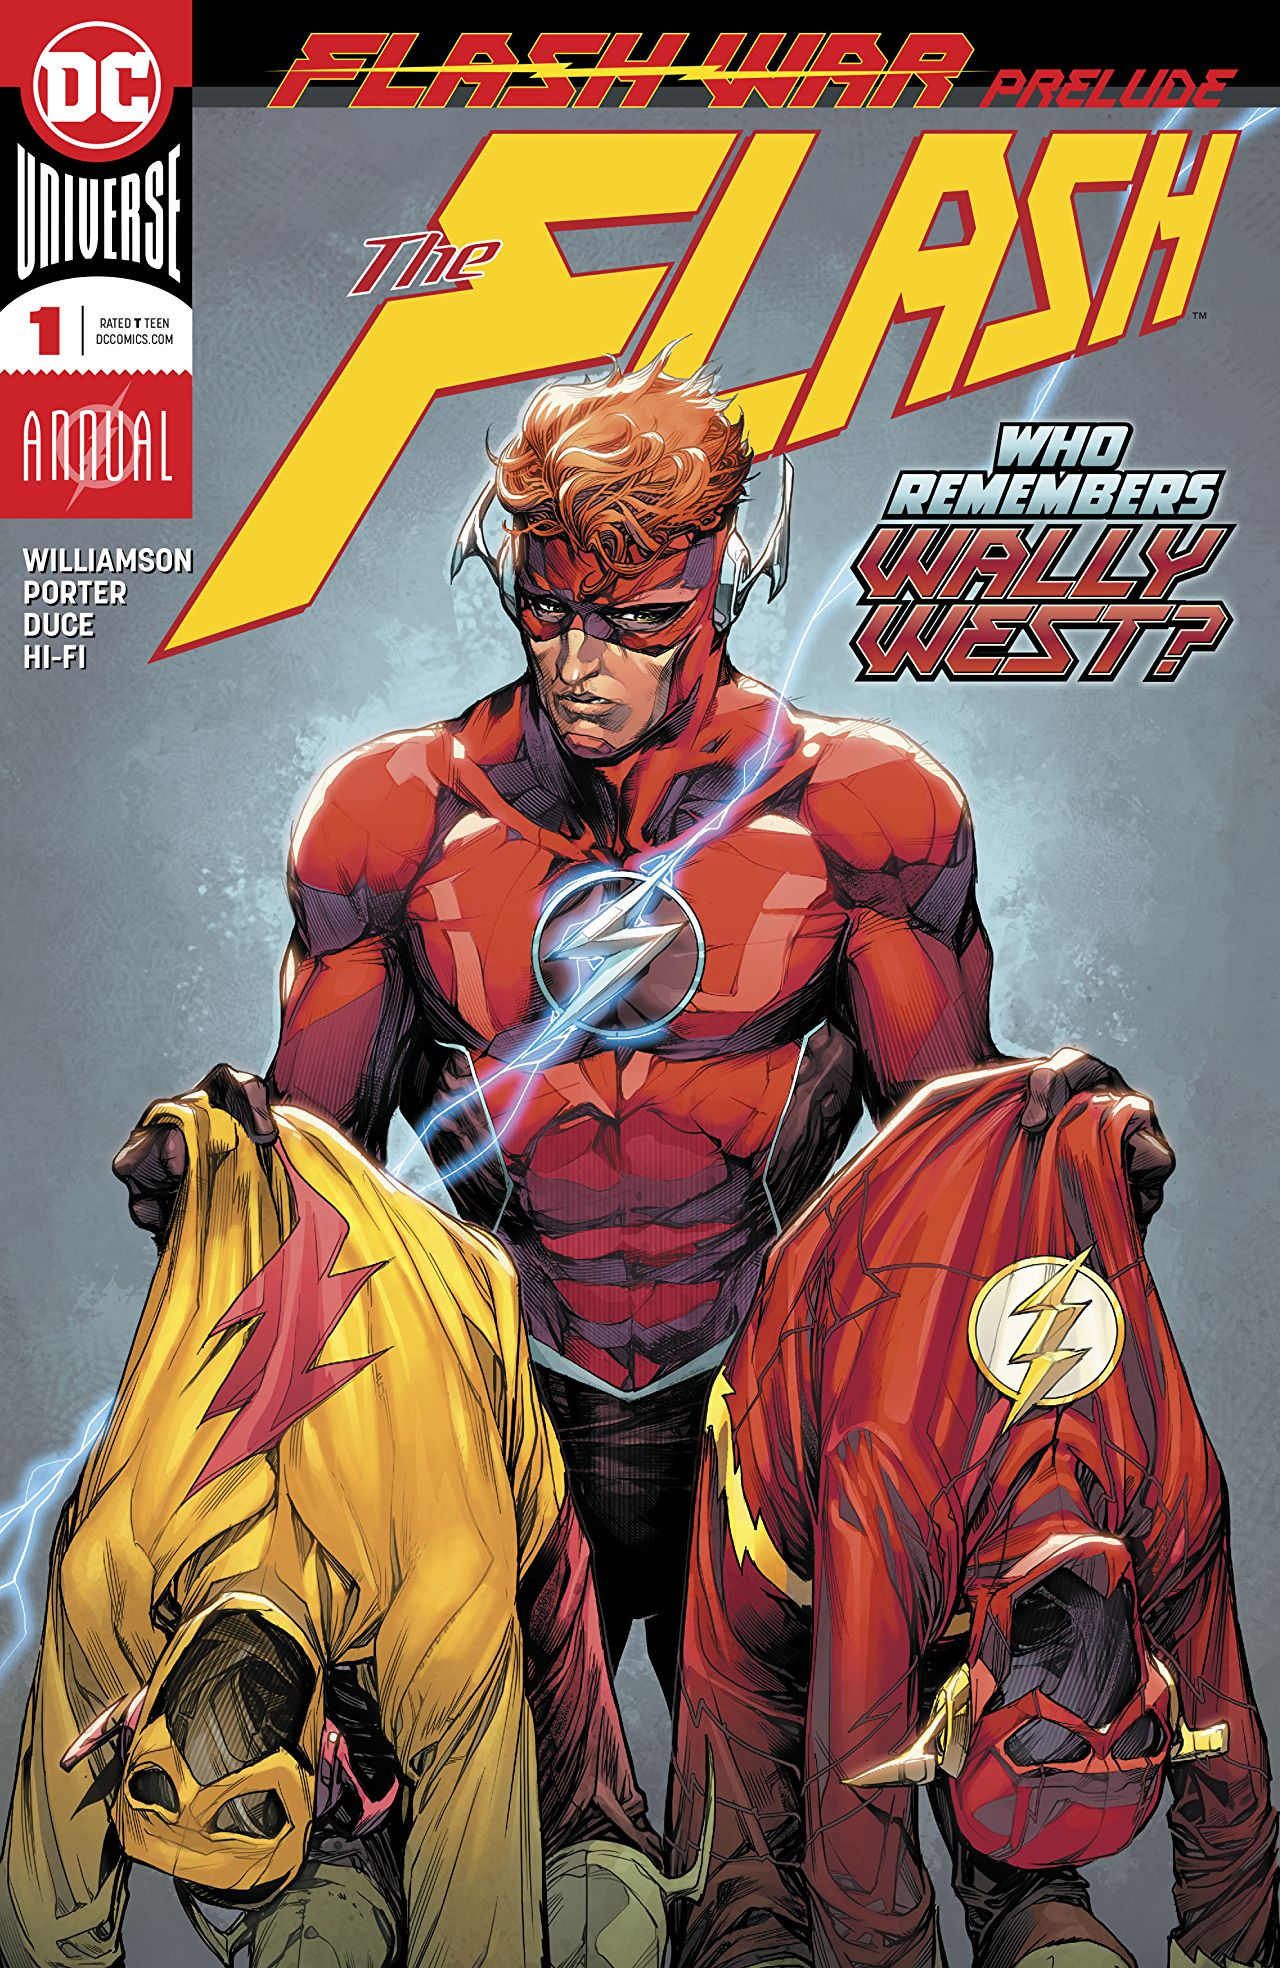 9c79319d643 The Flash Annual Vol 5 1 | DC Database | FANDOM powered by Wikia